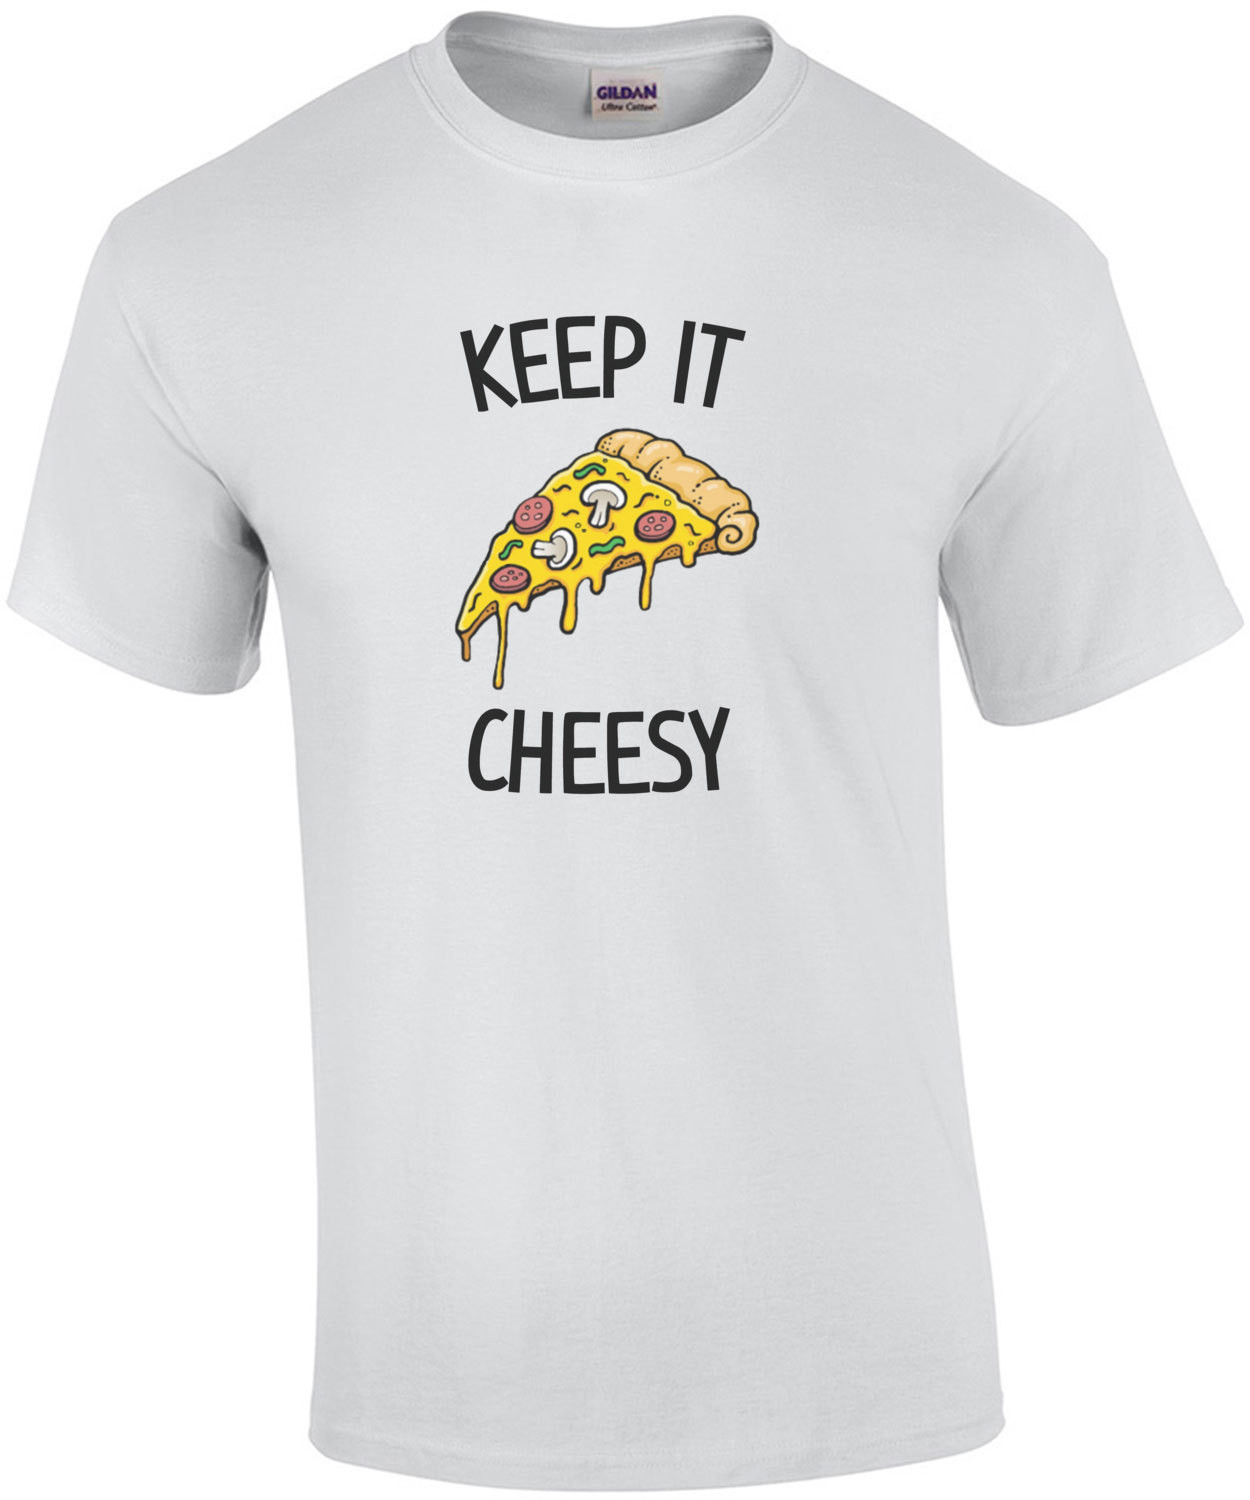 Keep it cheesy - funny cheese t-shirt